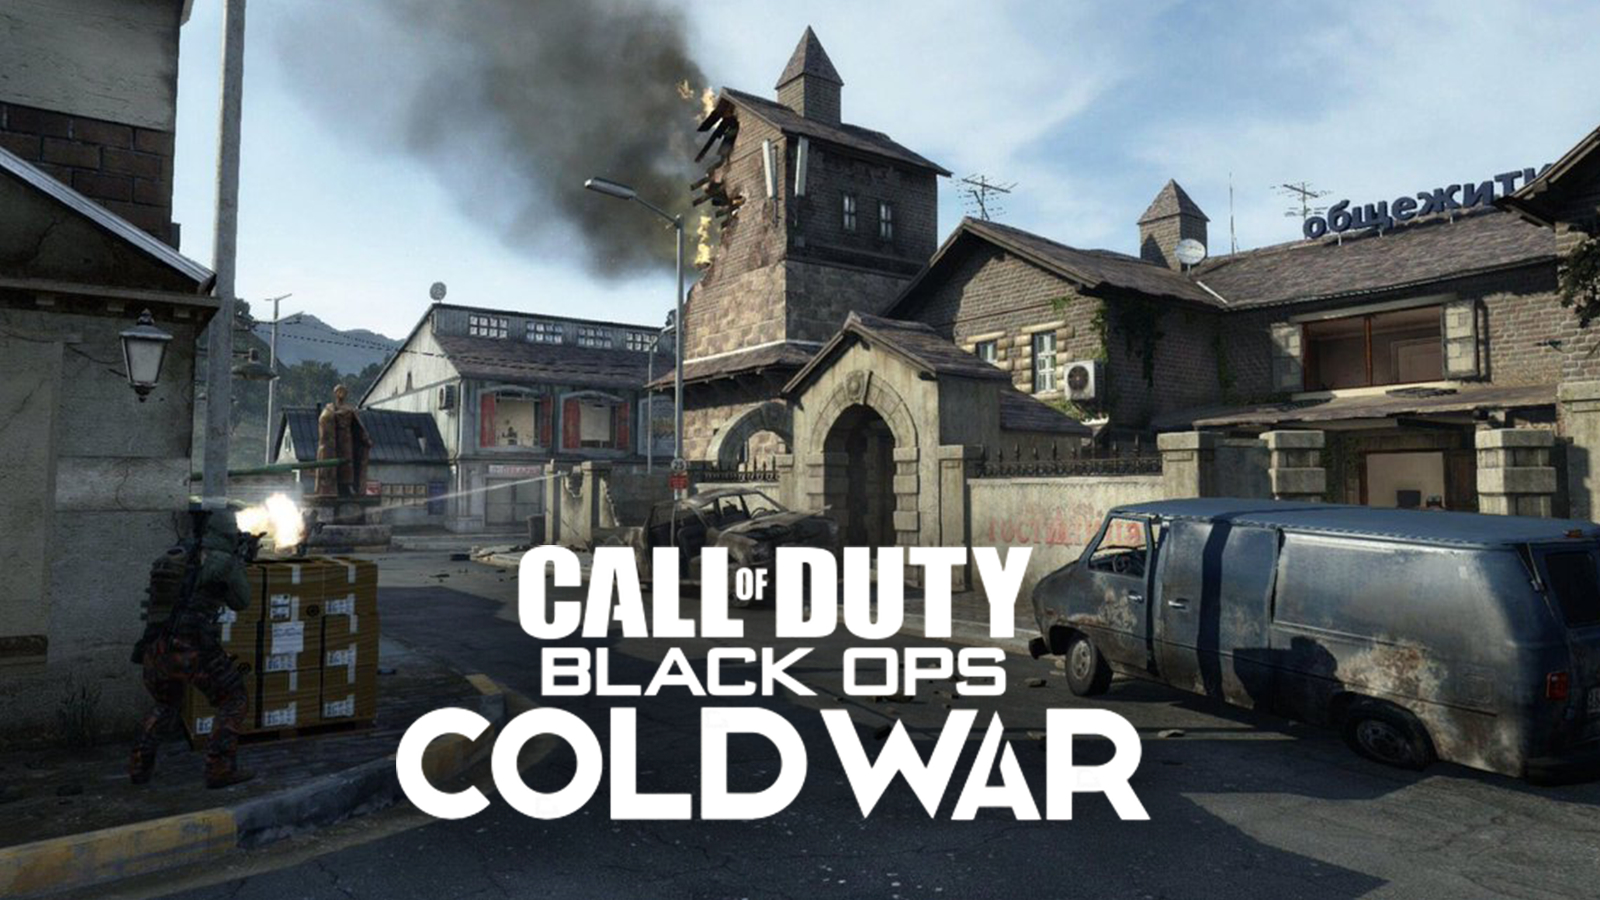 Standoff is one map that could be remade in Black Ops Cold War.